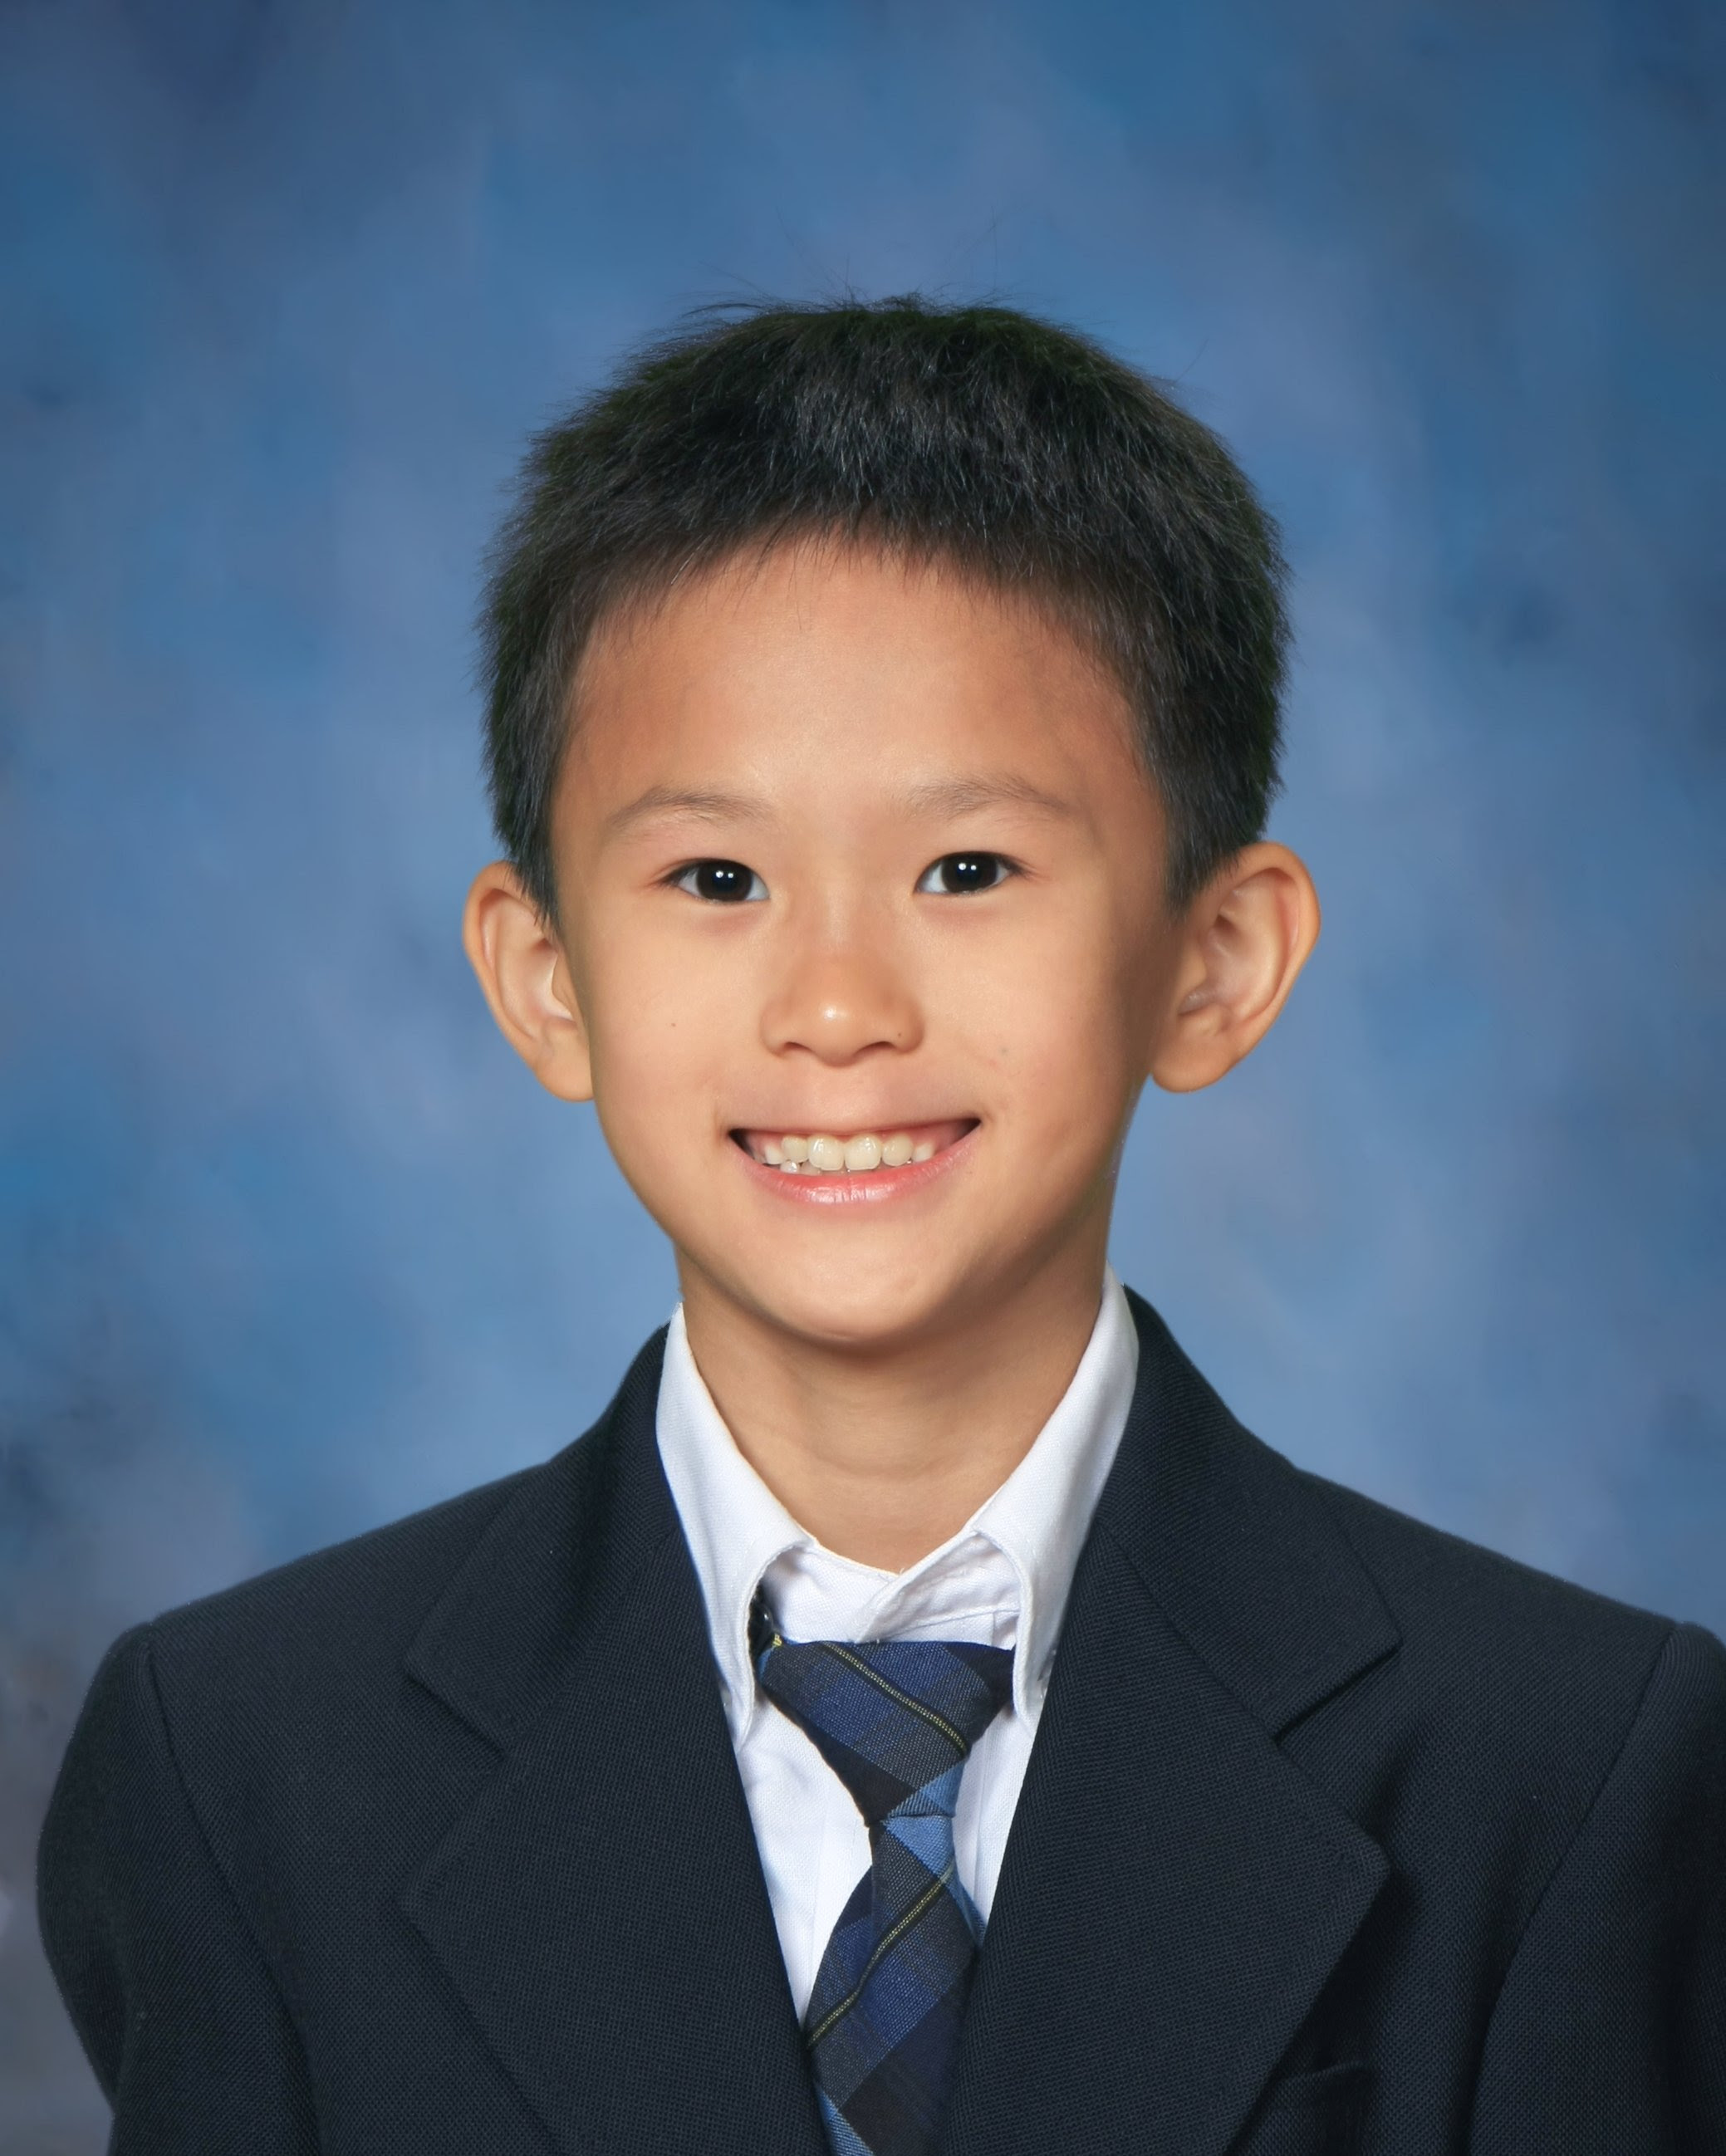 7 year old  David Lin  Stars as Amahl! David comes to MDLO by way of The Children's Chorus of Washington